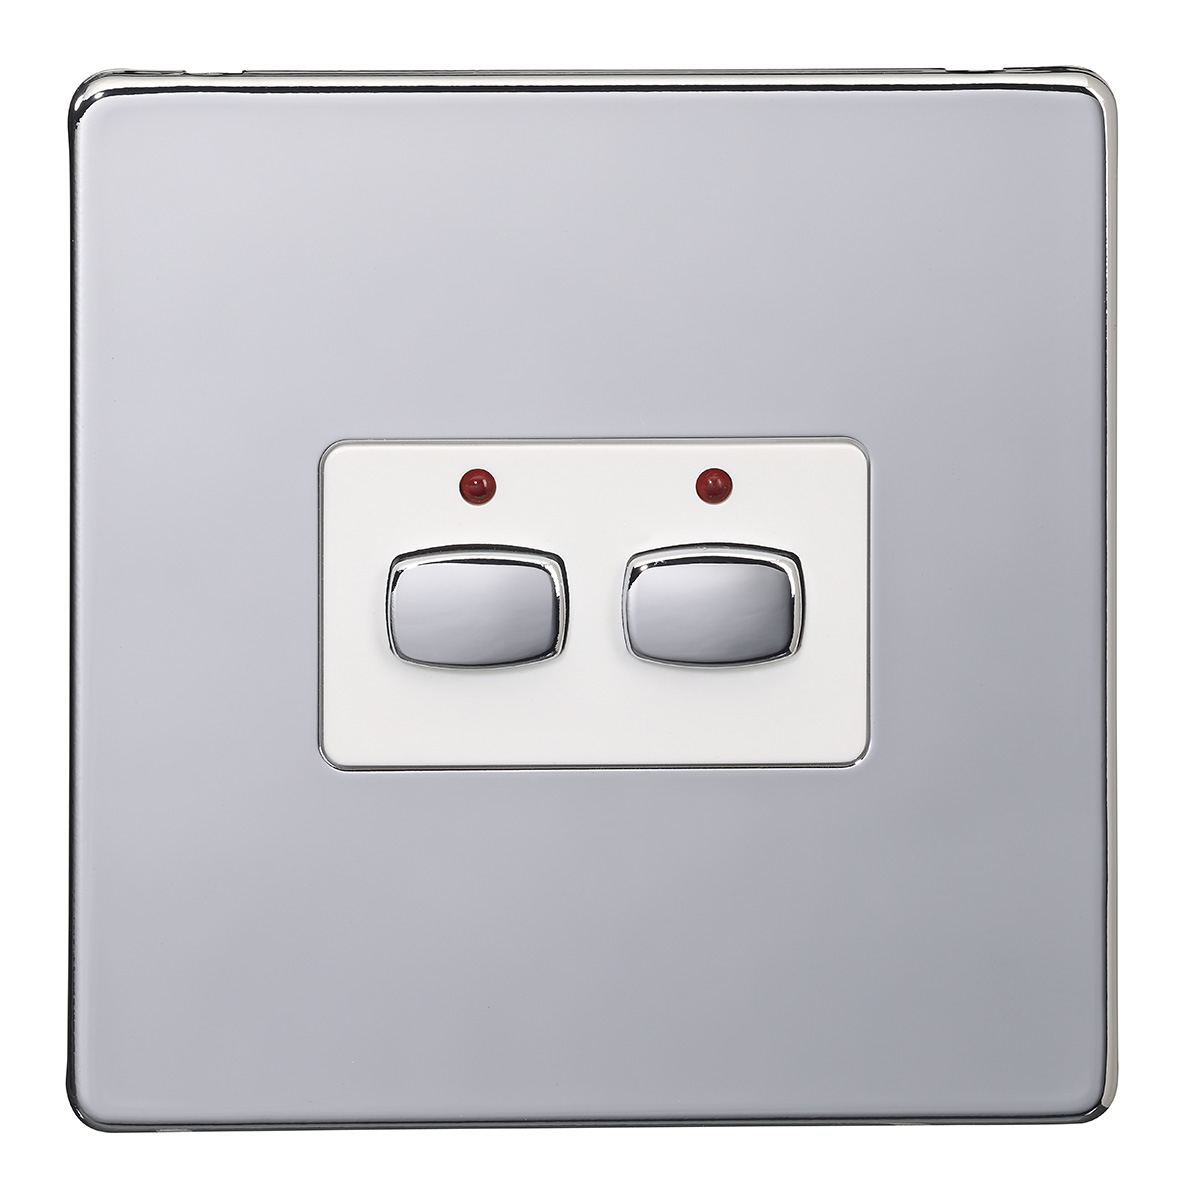 EnerGenie MIHO072 light switch Stainless steel,White